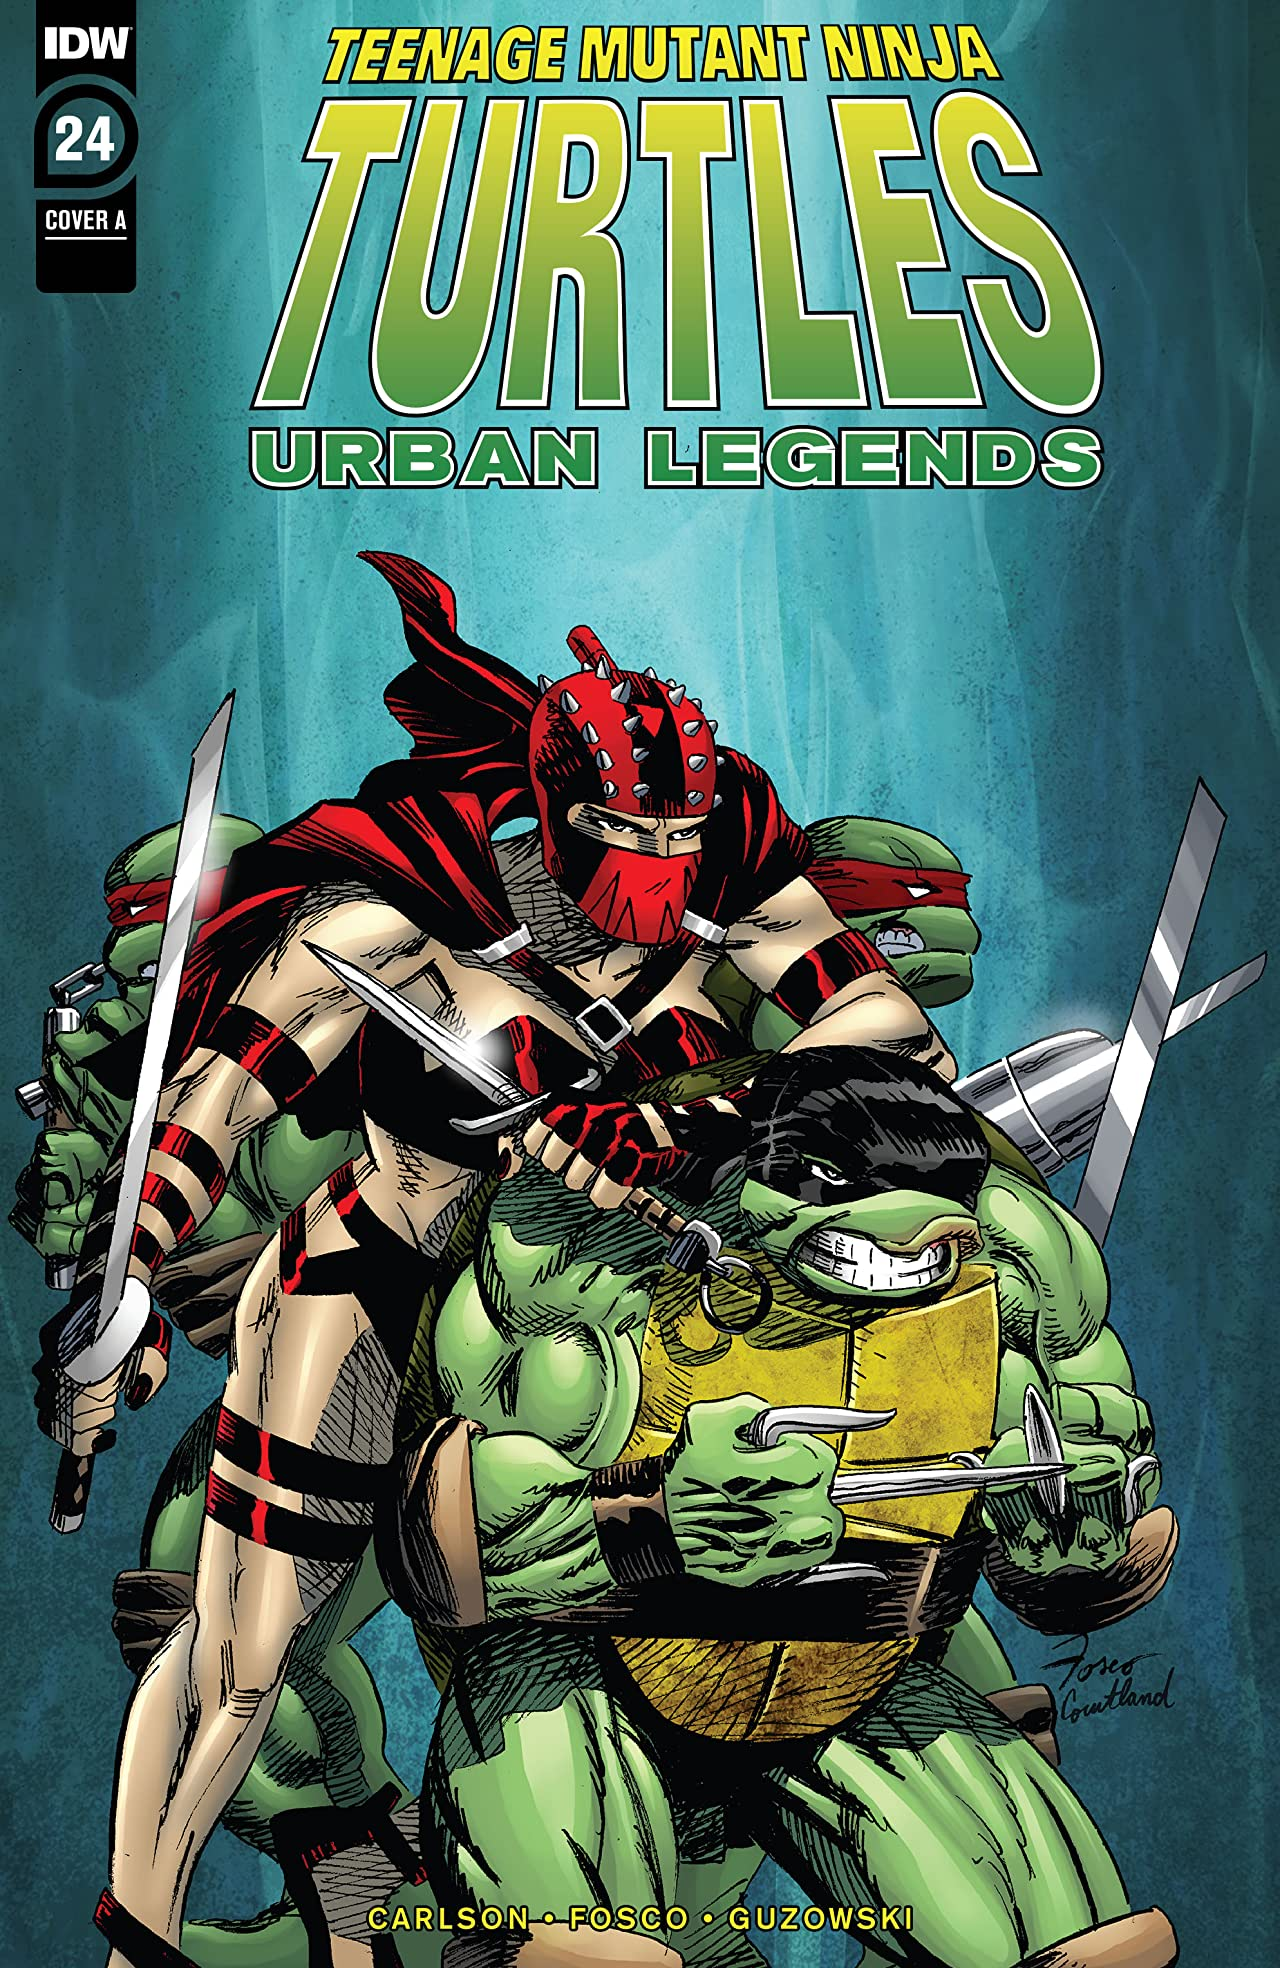 Teenage Mutant Ninja Turtles: Urban Legends No.24